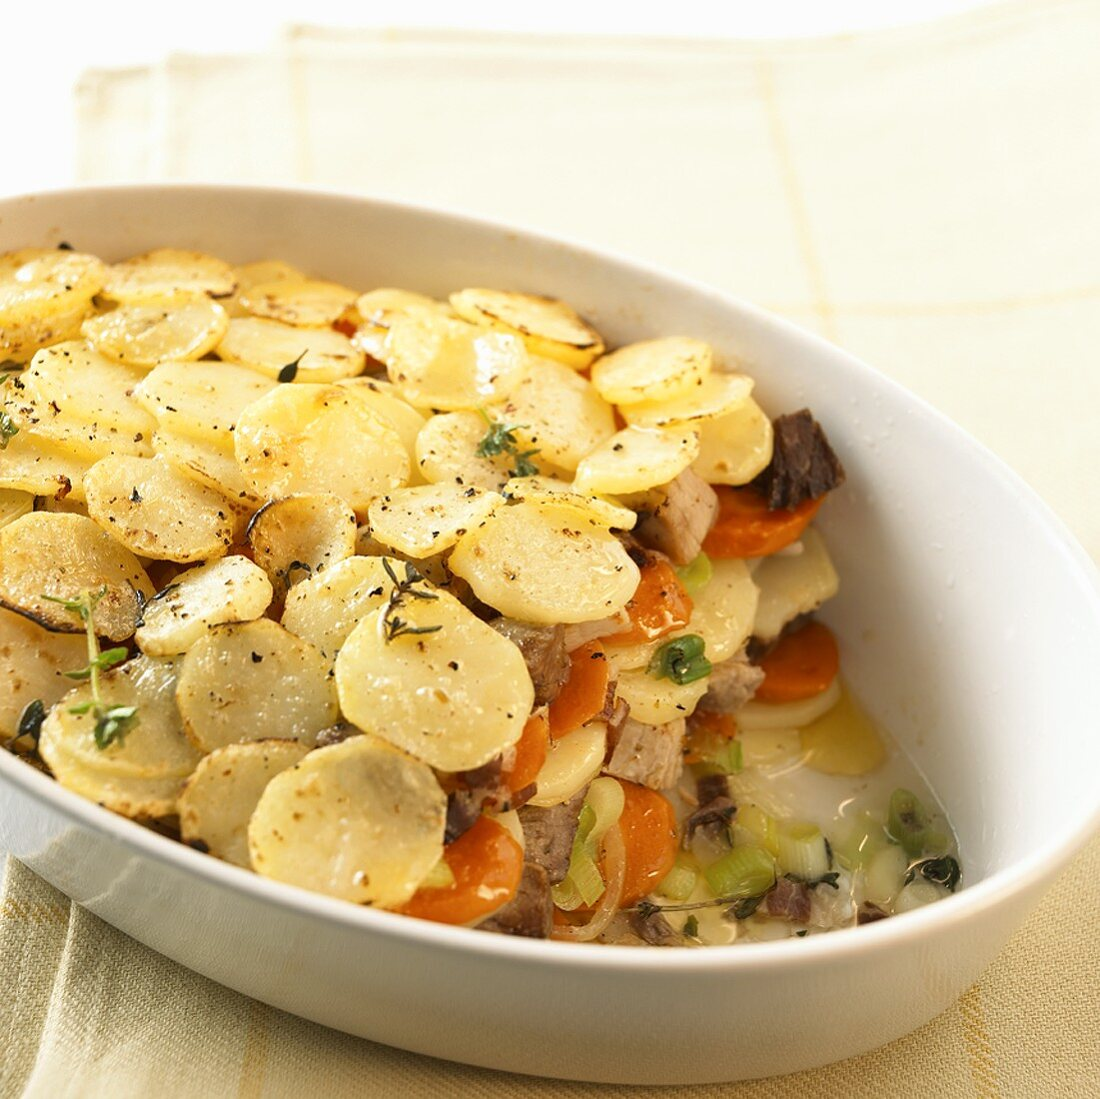 Meat and vegetable casserole